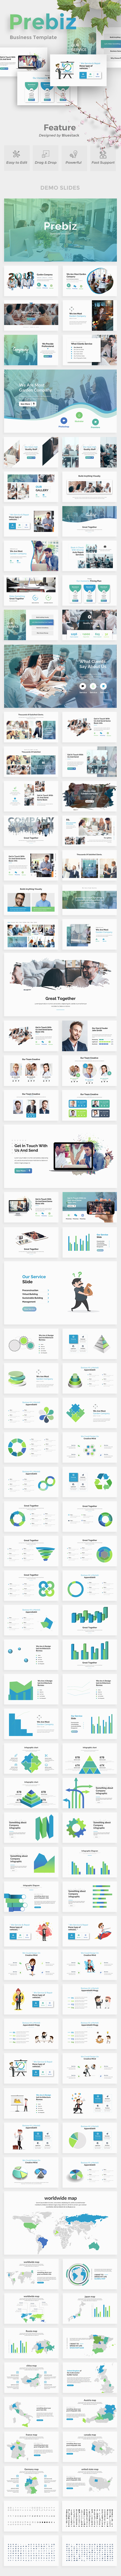 Prebiz Business Powerpoint Template - Business PowerPoint Templates